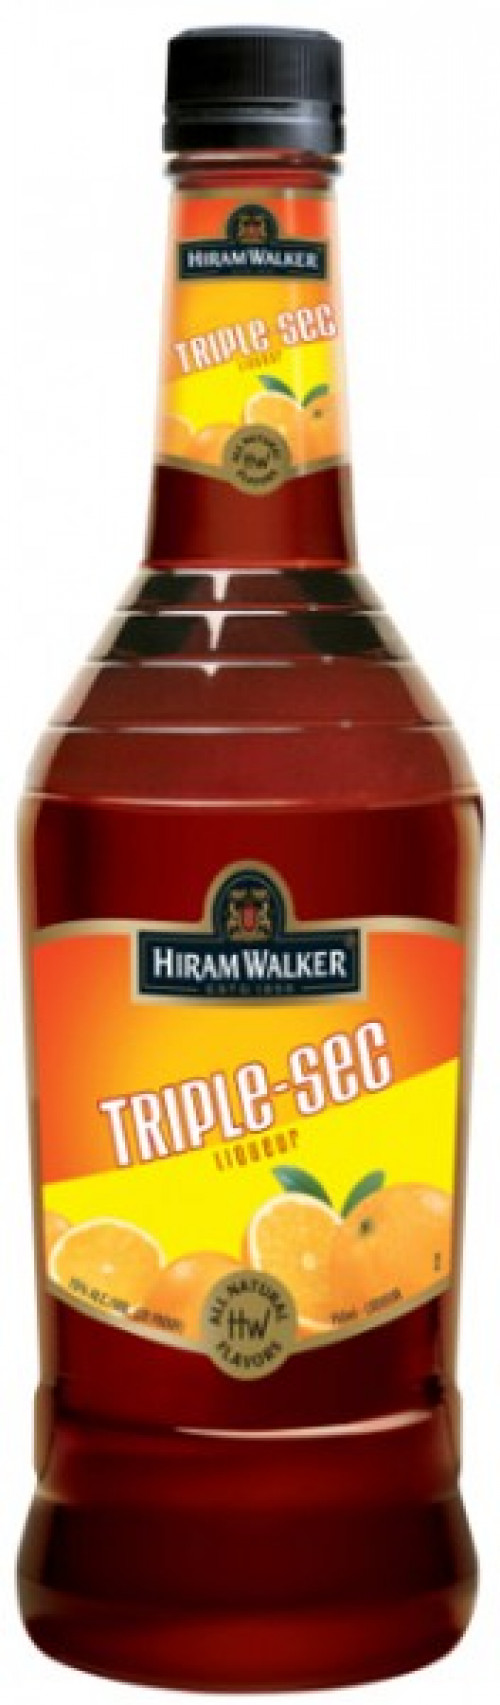 Hiram Walker Triple Sec 30 Proof 1L